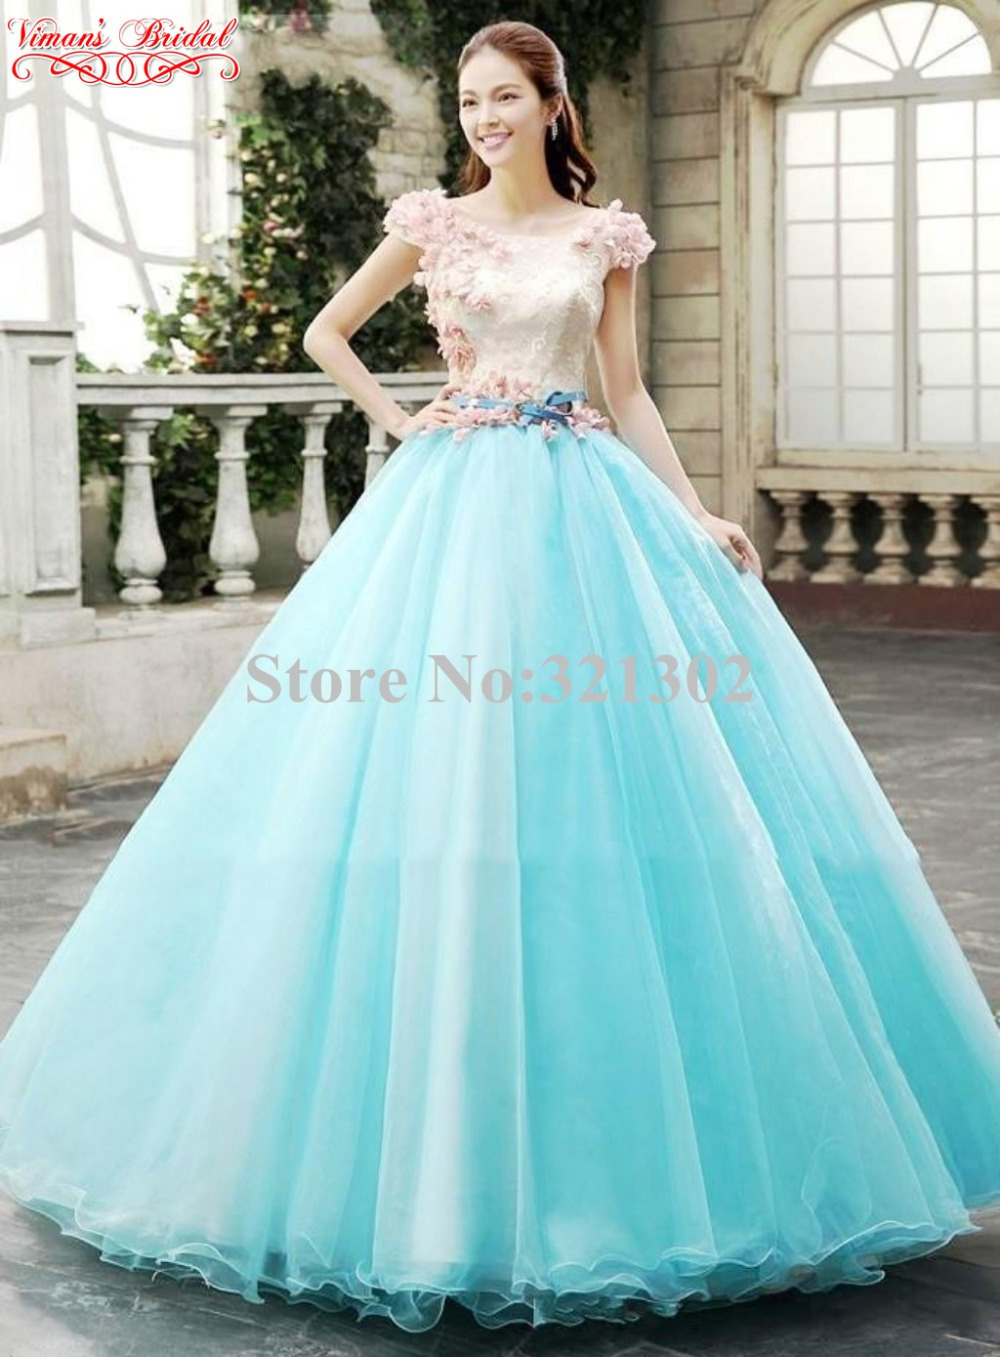 Compare Prices on Quinceanera Dresses Long Sleeve- Online Shopping ...